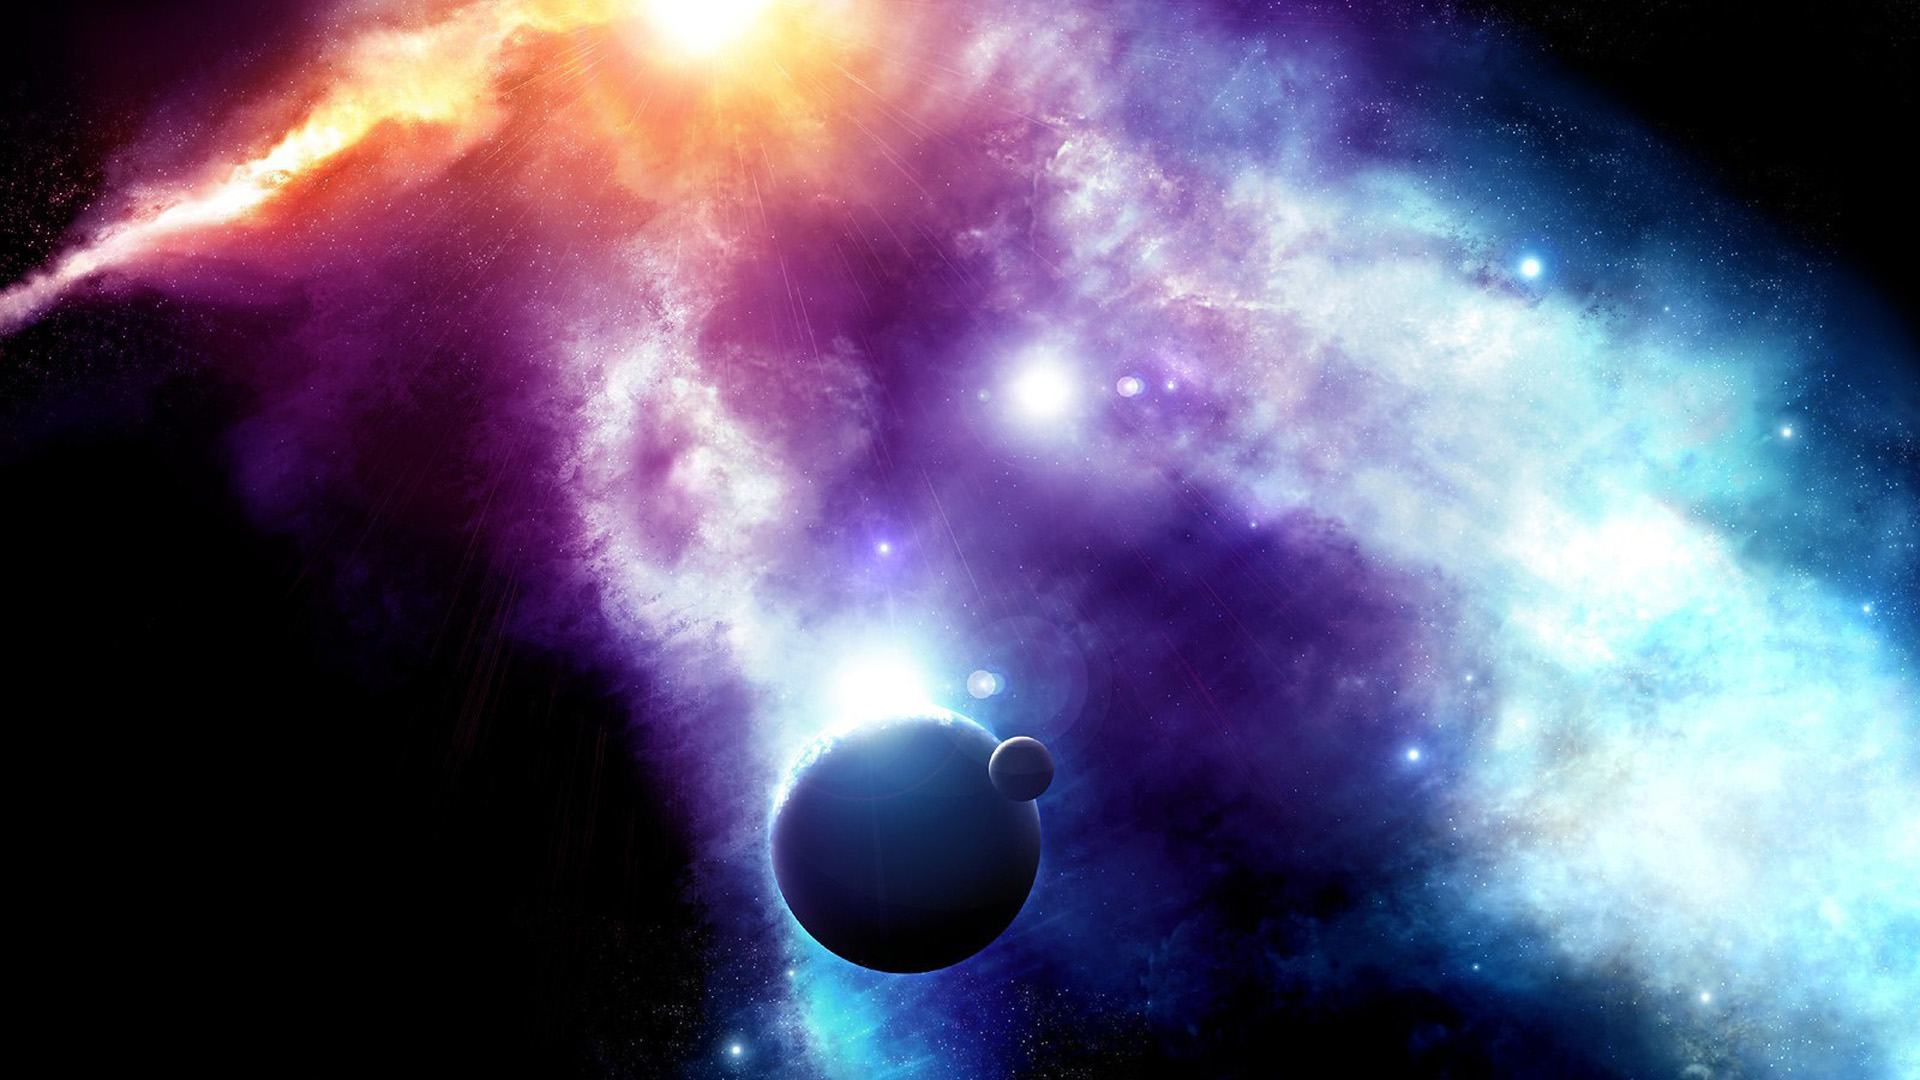 Download free HD 3D Space Android Wallpaper, image